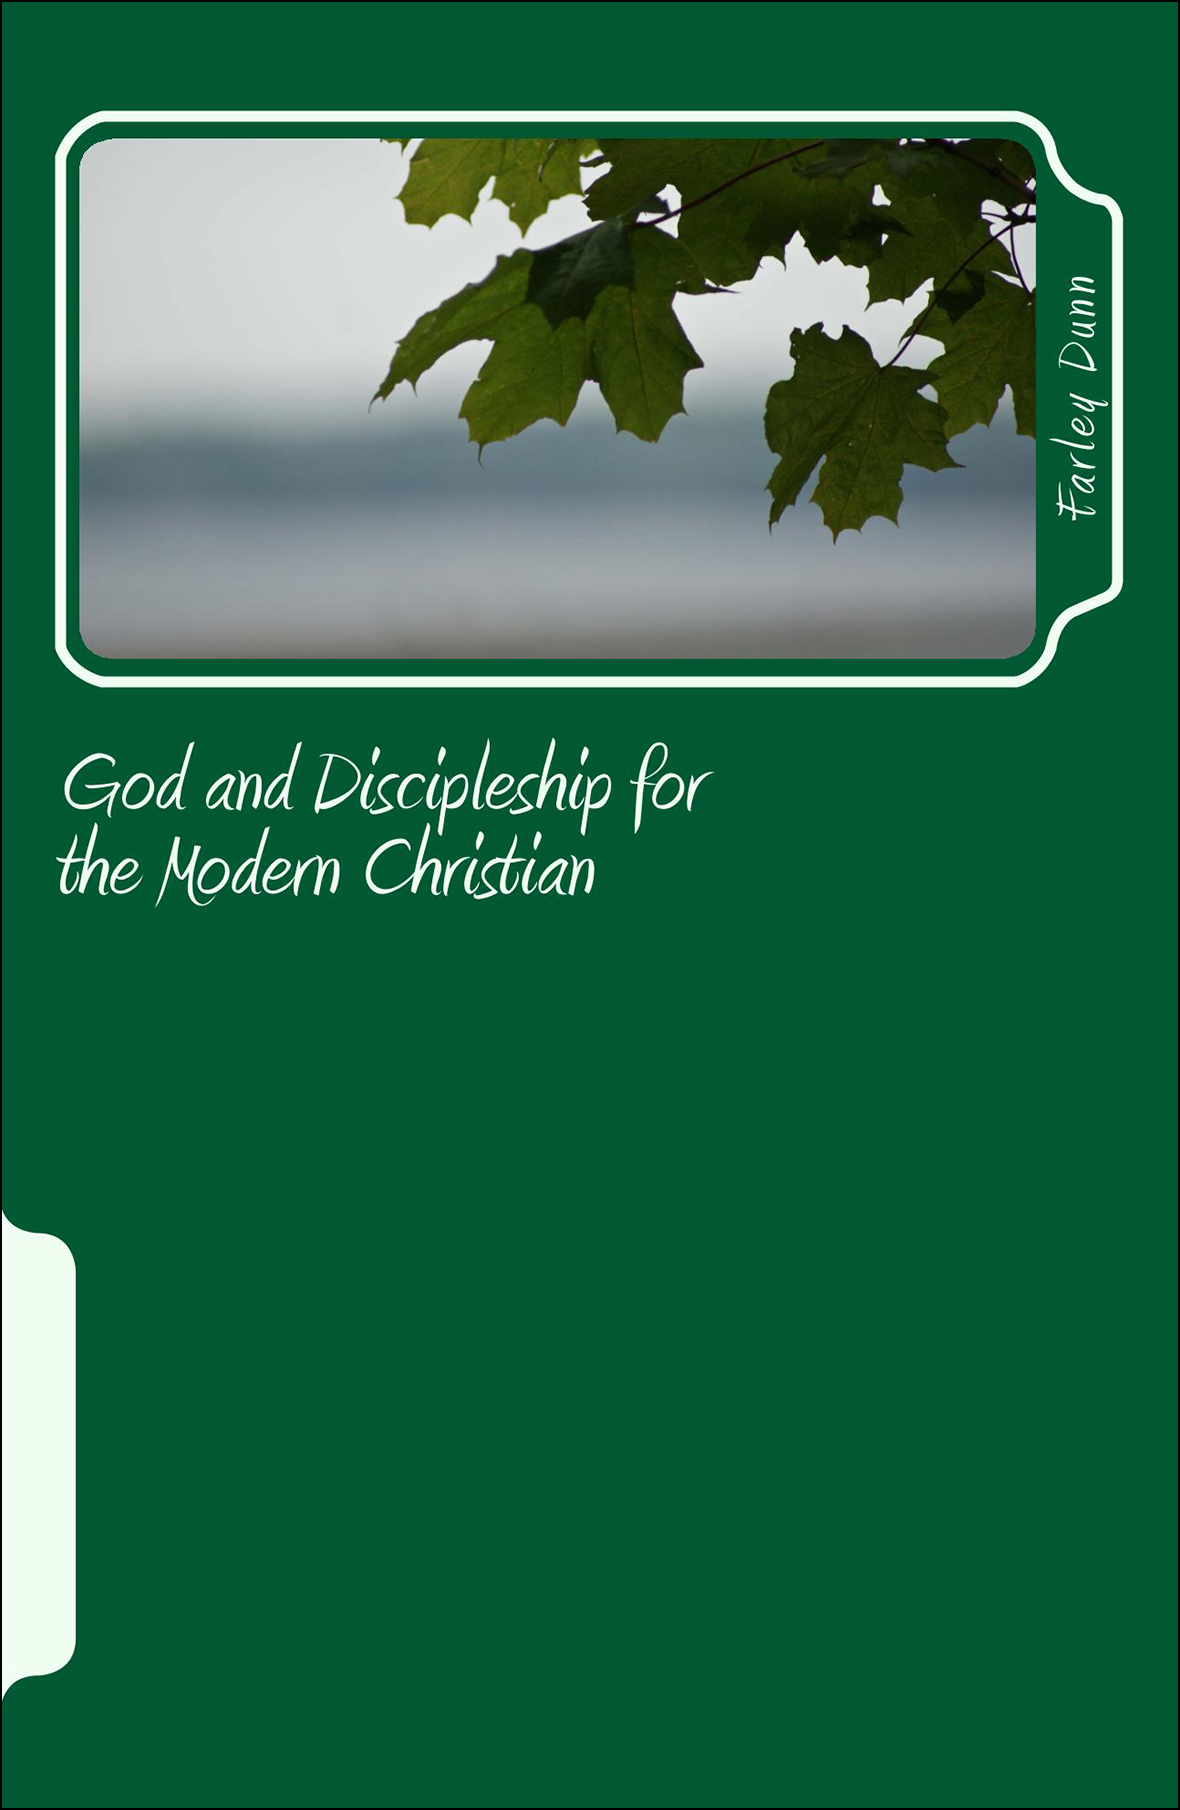 God and Discipleship Cover for web insertion vol 4